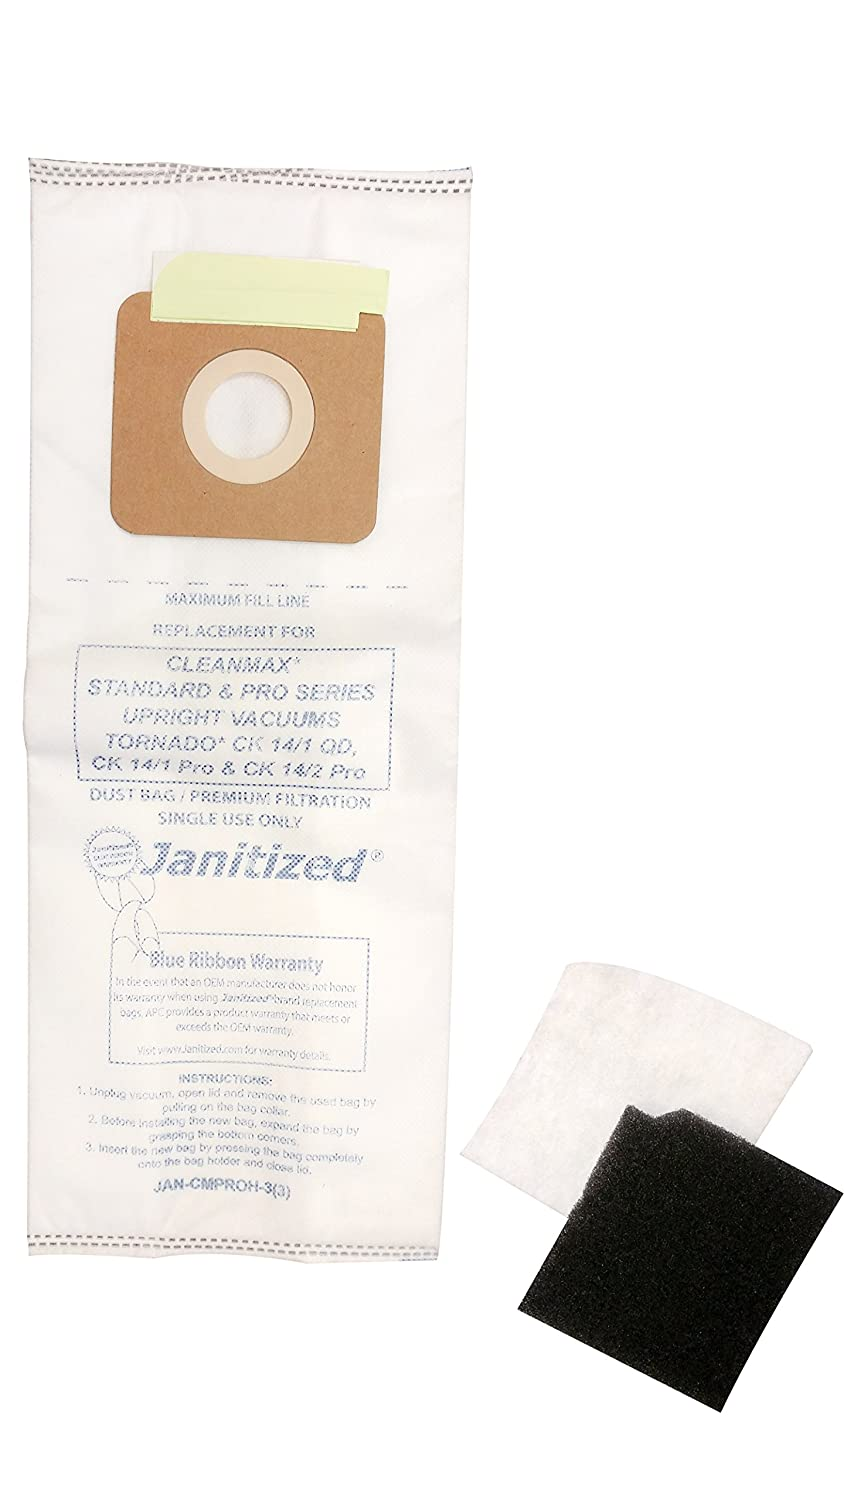 Janitized JAN-CMPROH-3(3) High Efficiency Premium Replacement Commercial Vacuum Paper Bag for CleanMax Pro, Tornado CK 14, OEM#CMH-6, CMPS-SF, 90141 and 90145 (Pack of 3)